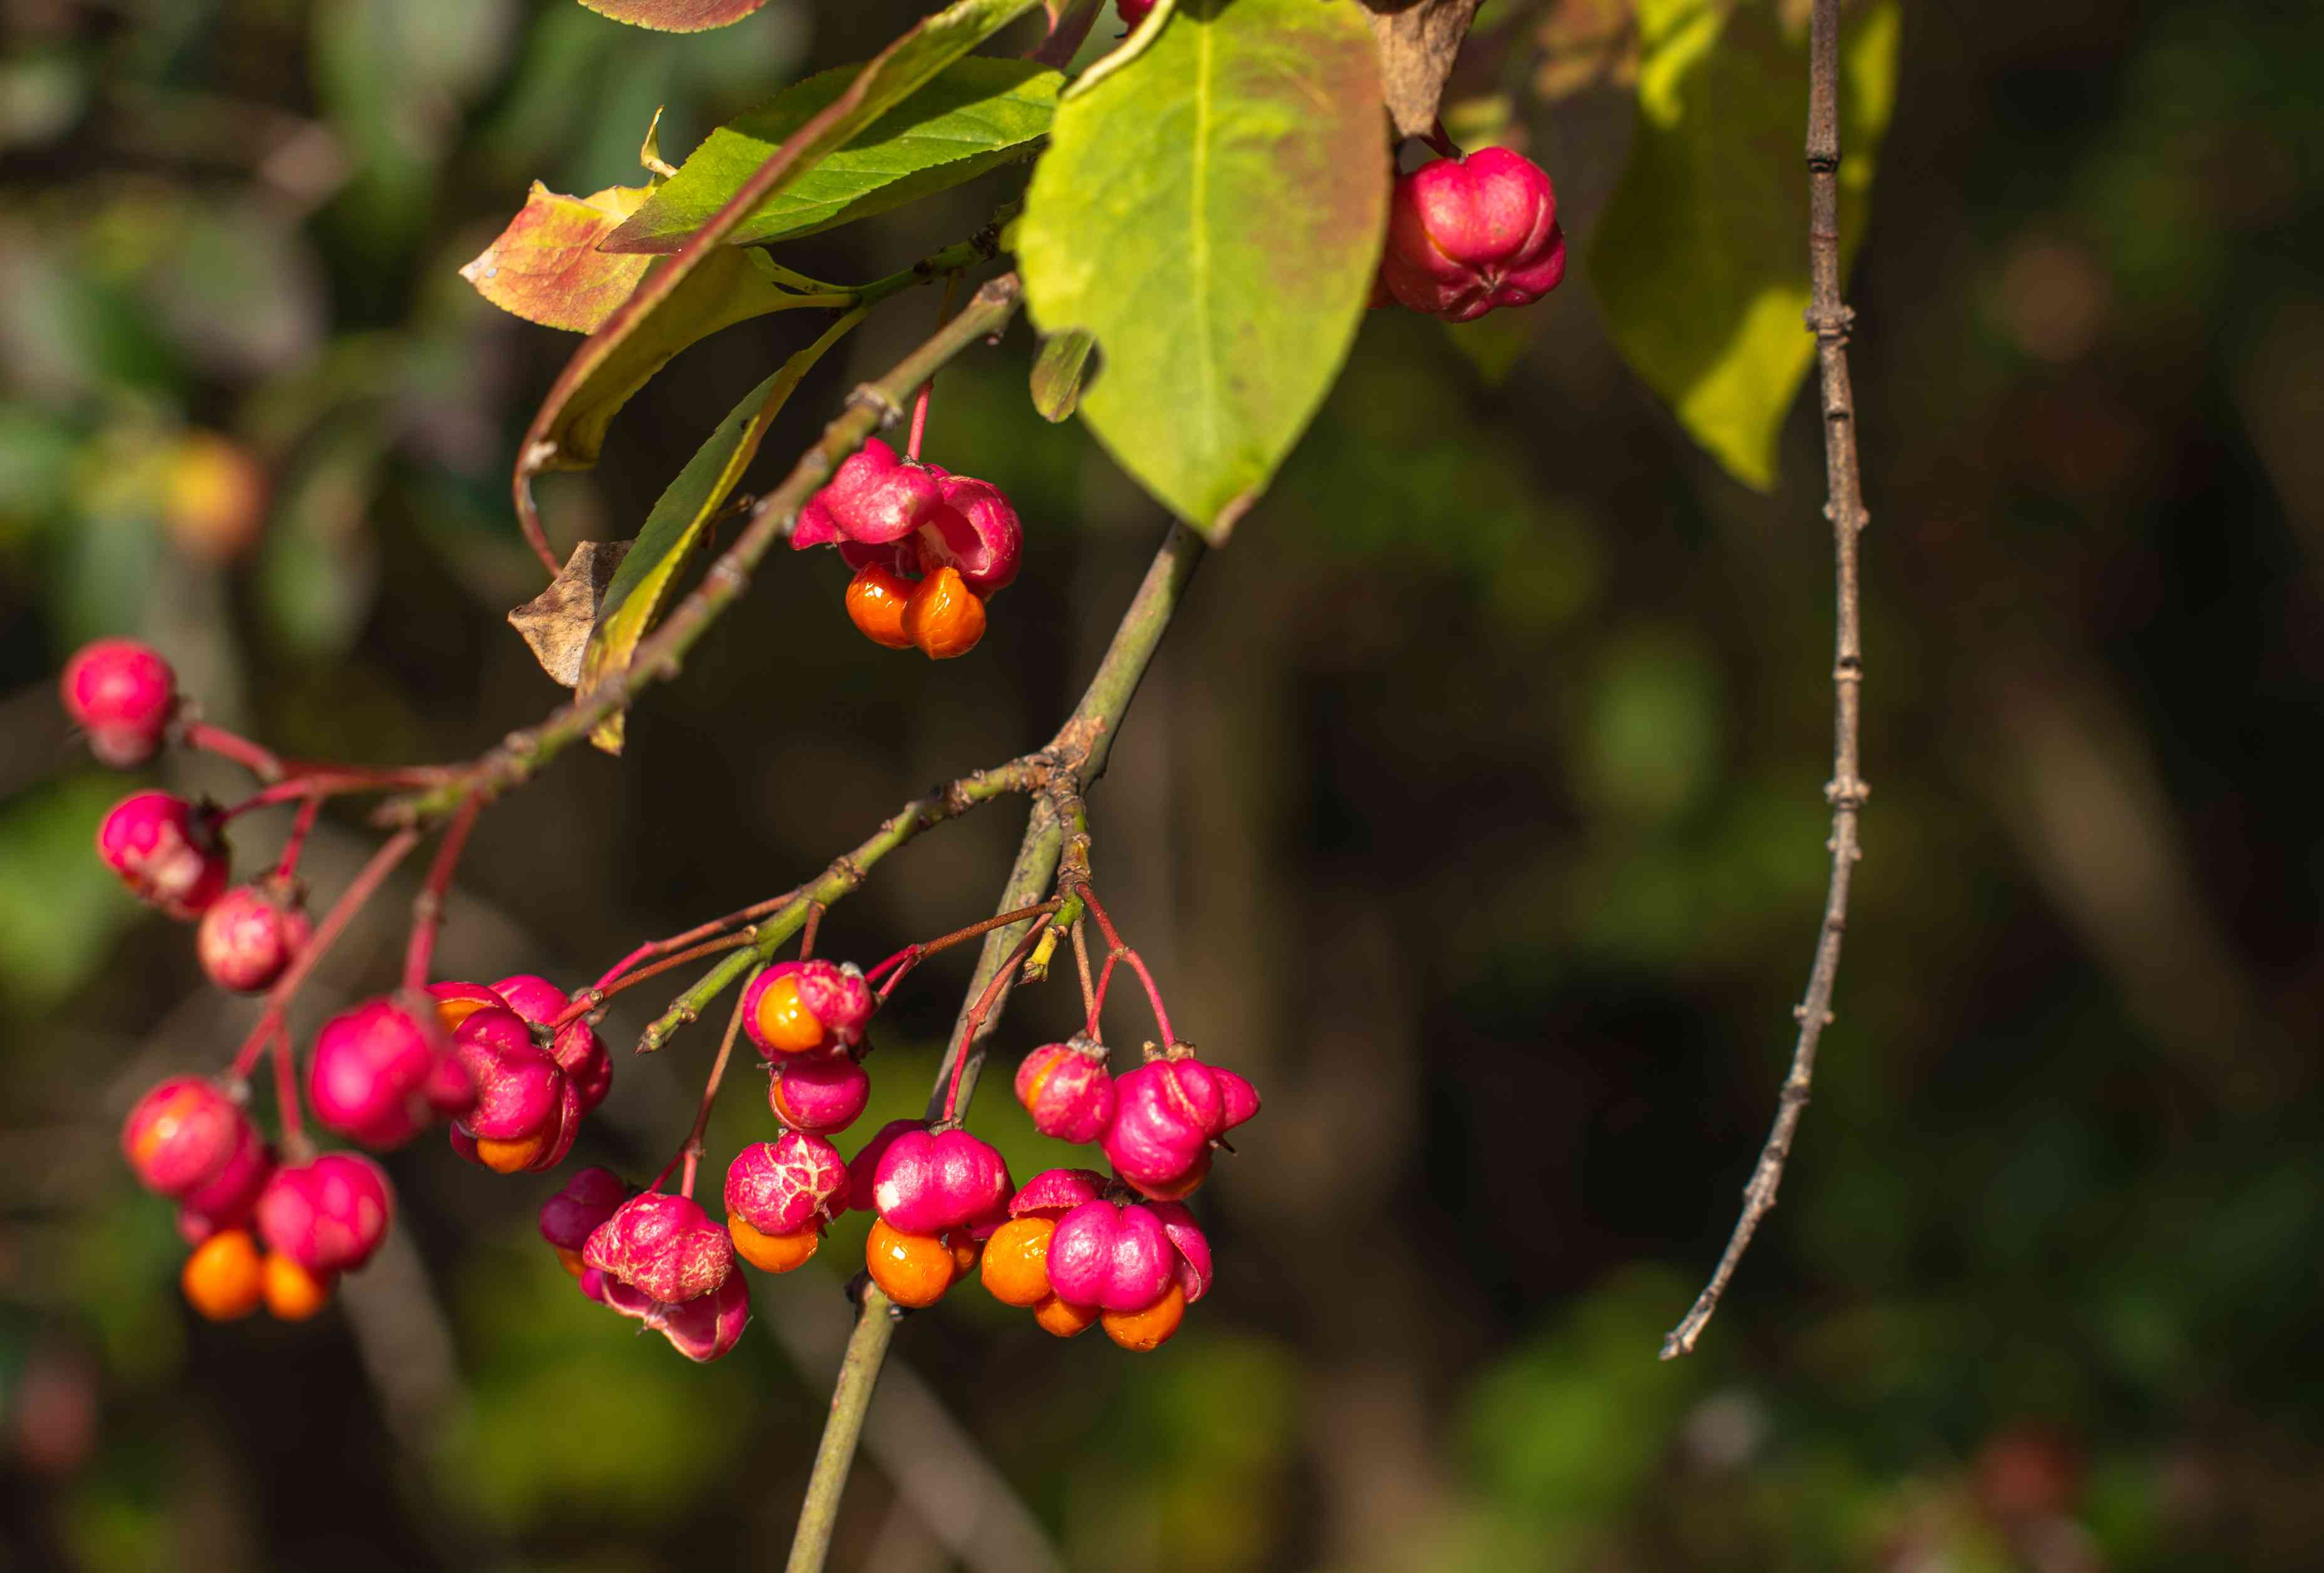 European spindle tree branch with fuchsia colored berries closeup